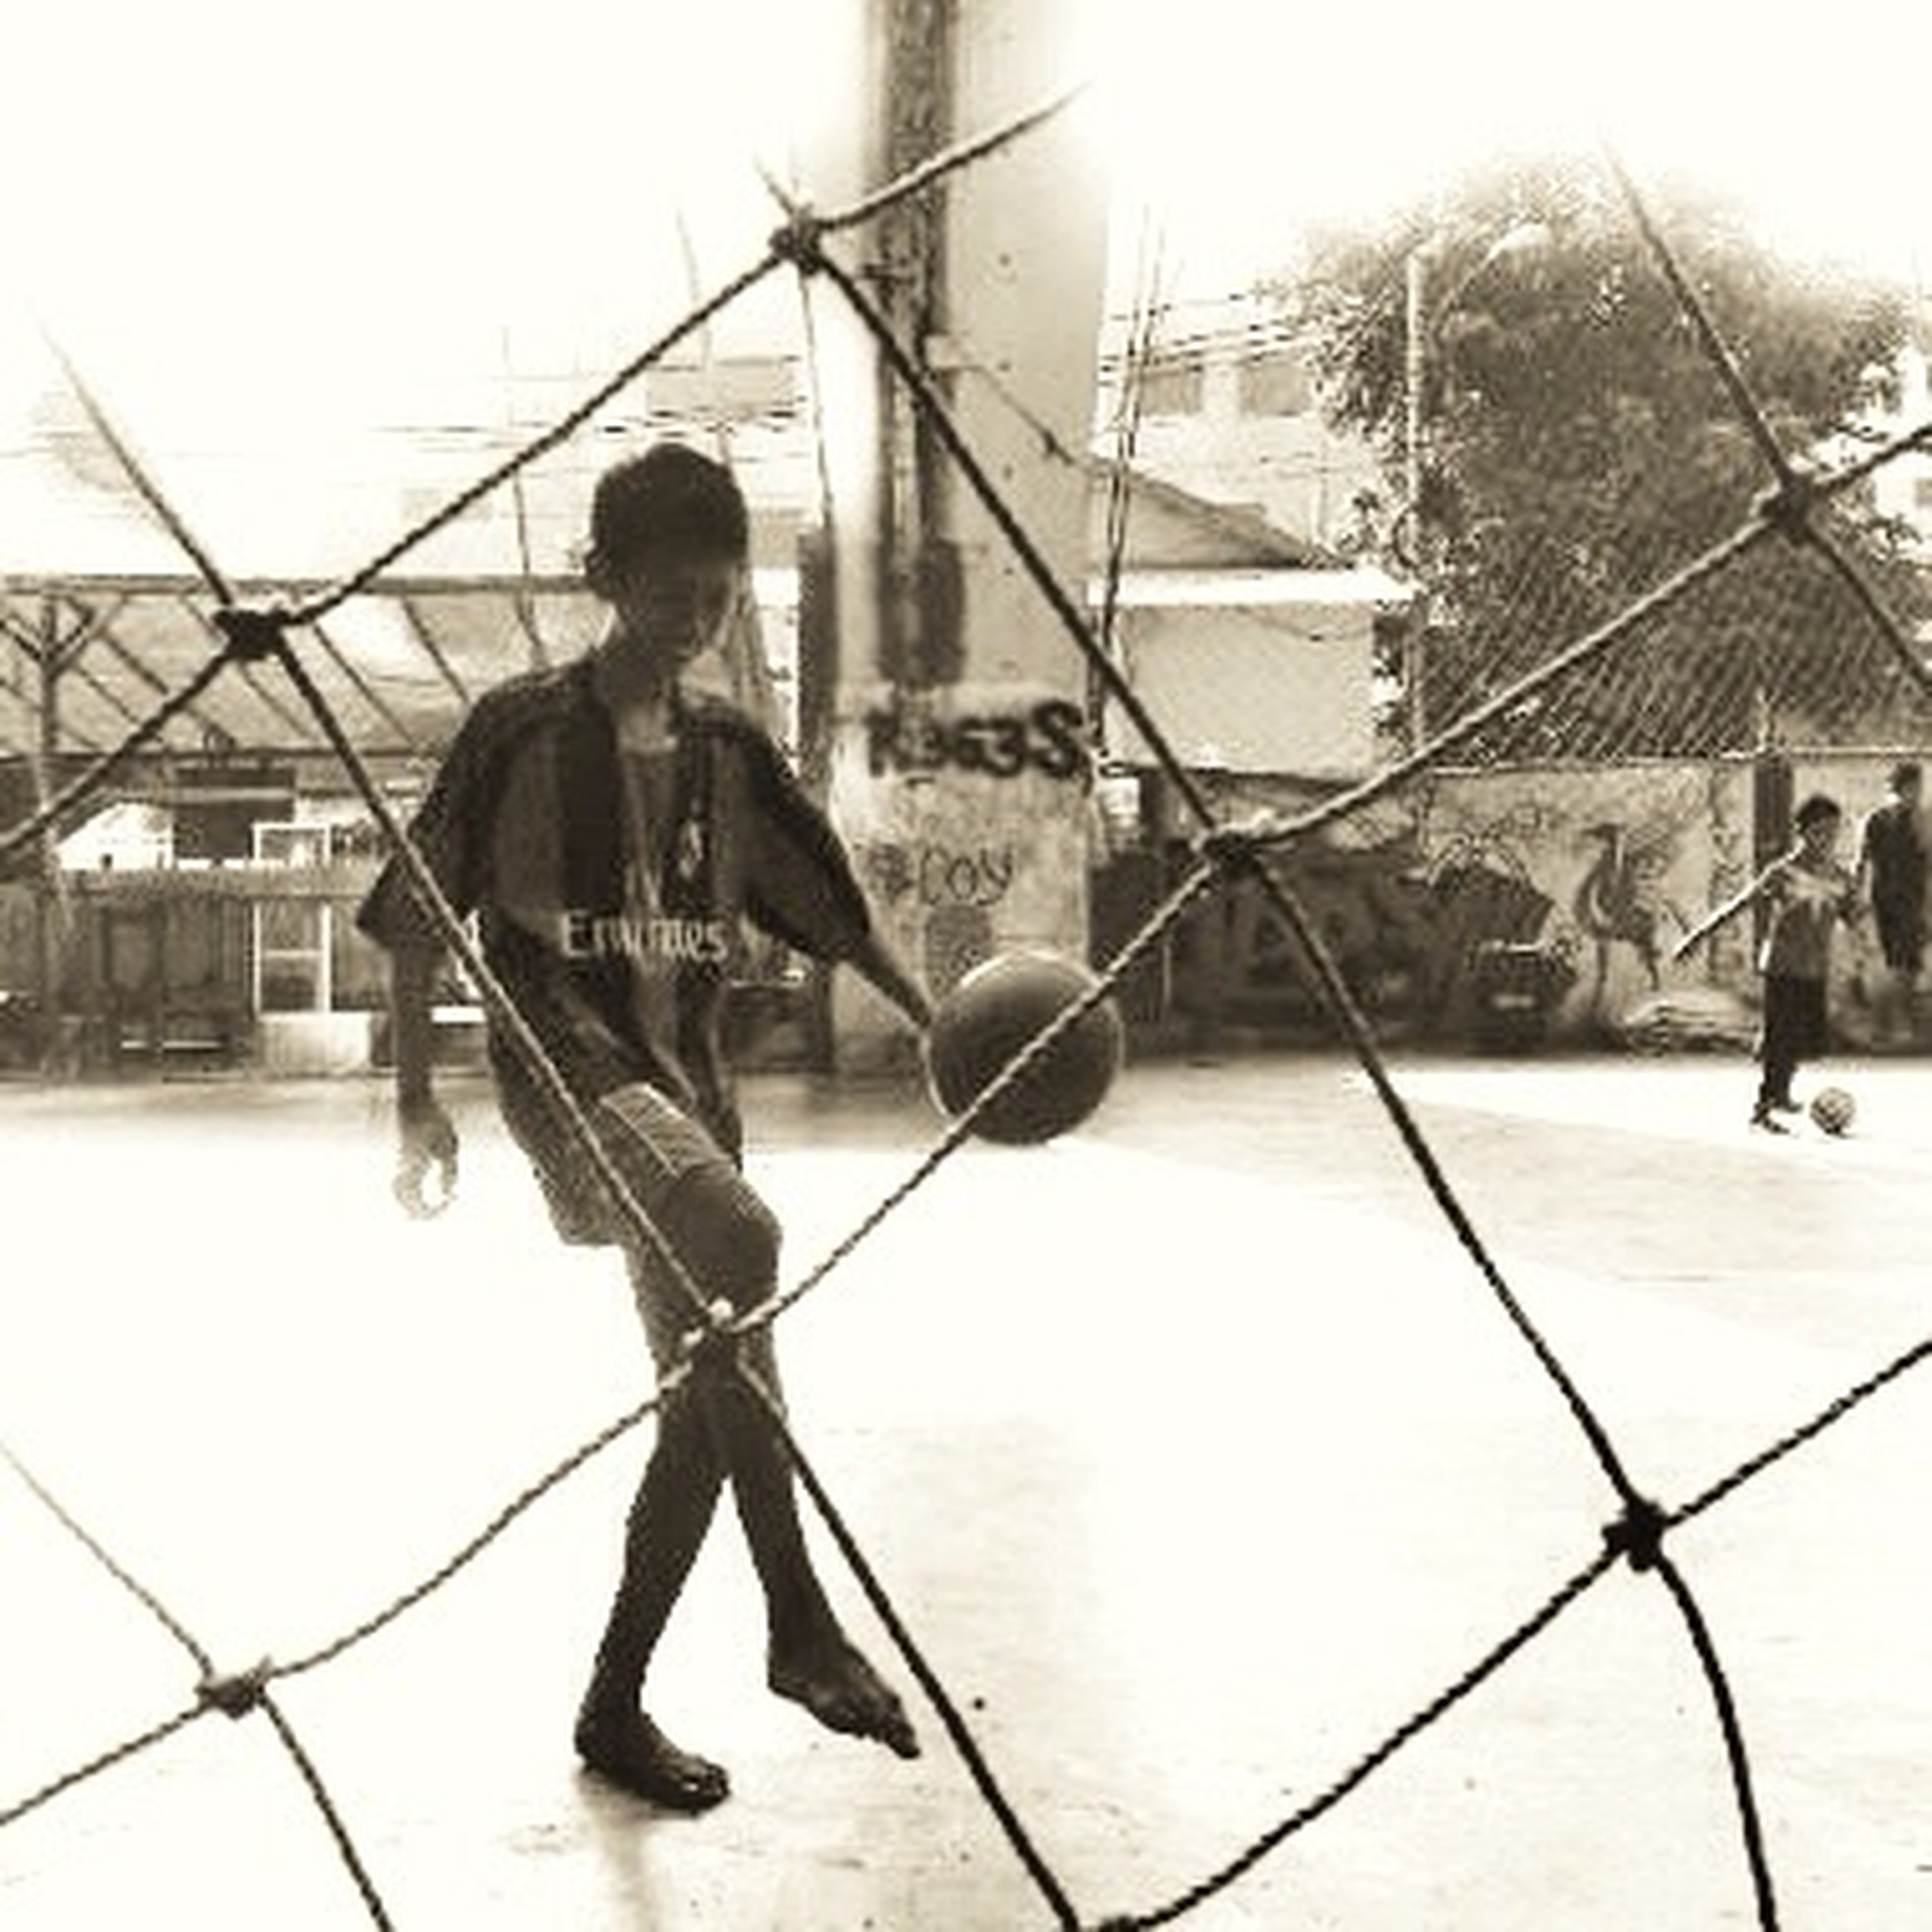 lifestyles, leisure activity, full length, childhood, men, chainlink fence, boys, casual clothing, fence, playing, enjoyment, girls, standing, togetherness, protection, fun, sky